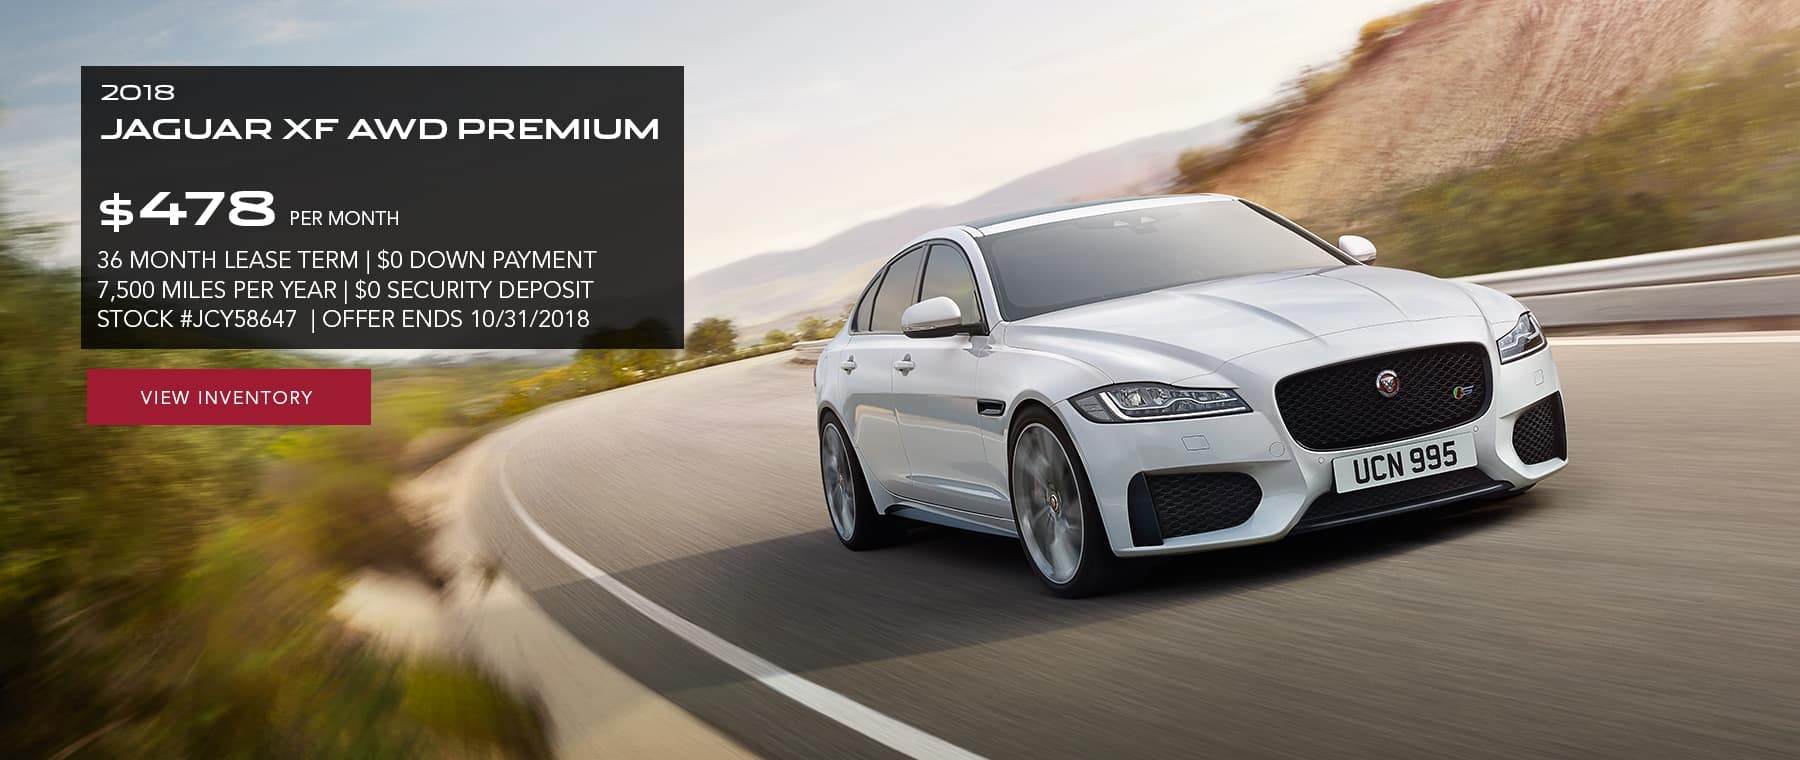 Check Dealer For Availability. Offer Must Be Presented At Time Of Purchase.  See Jaguar Of Paramus For Details.